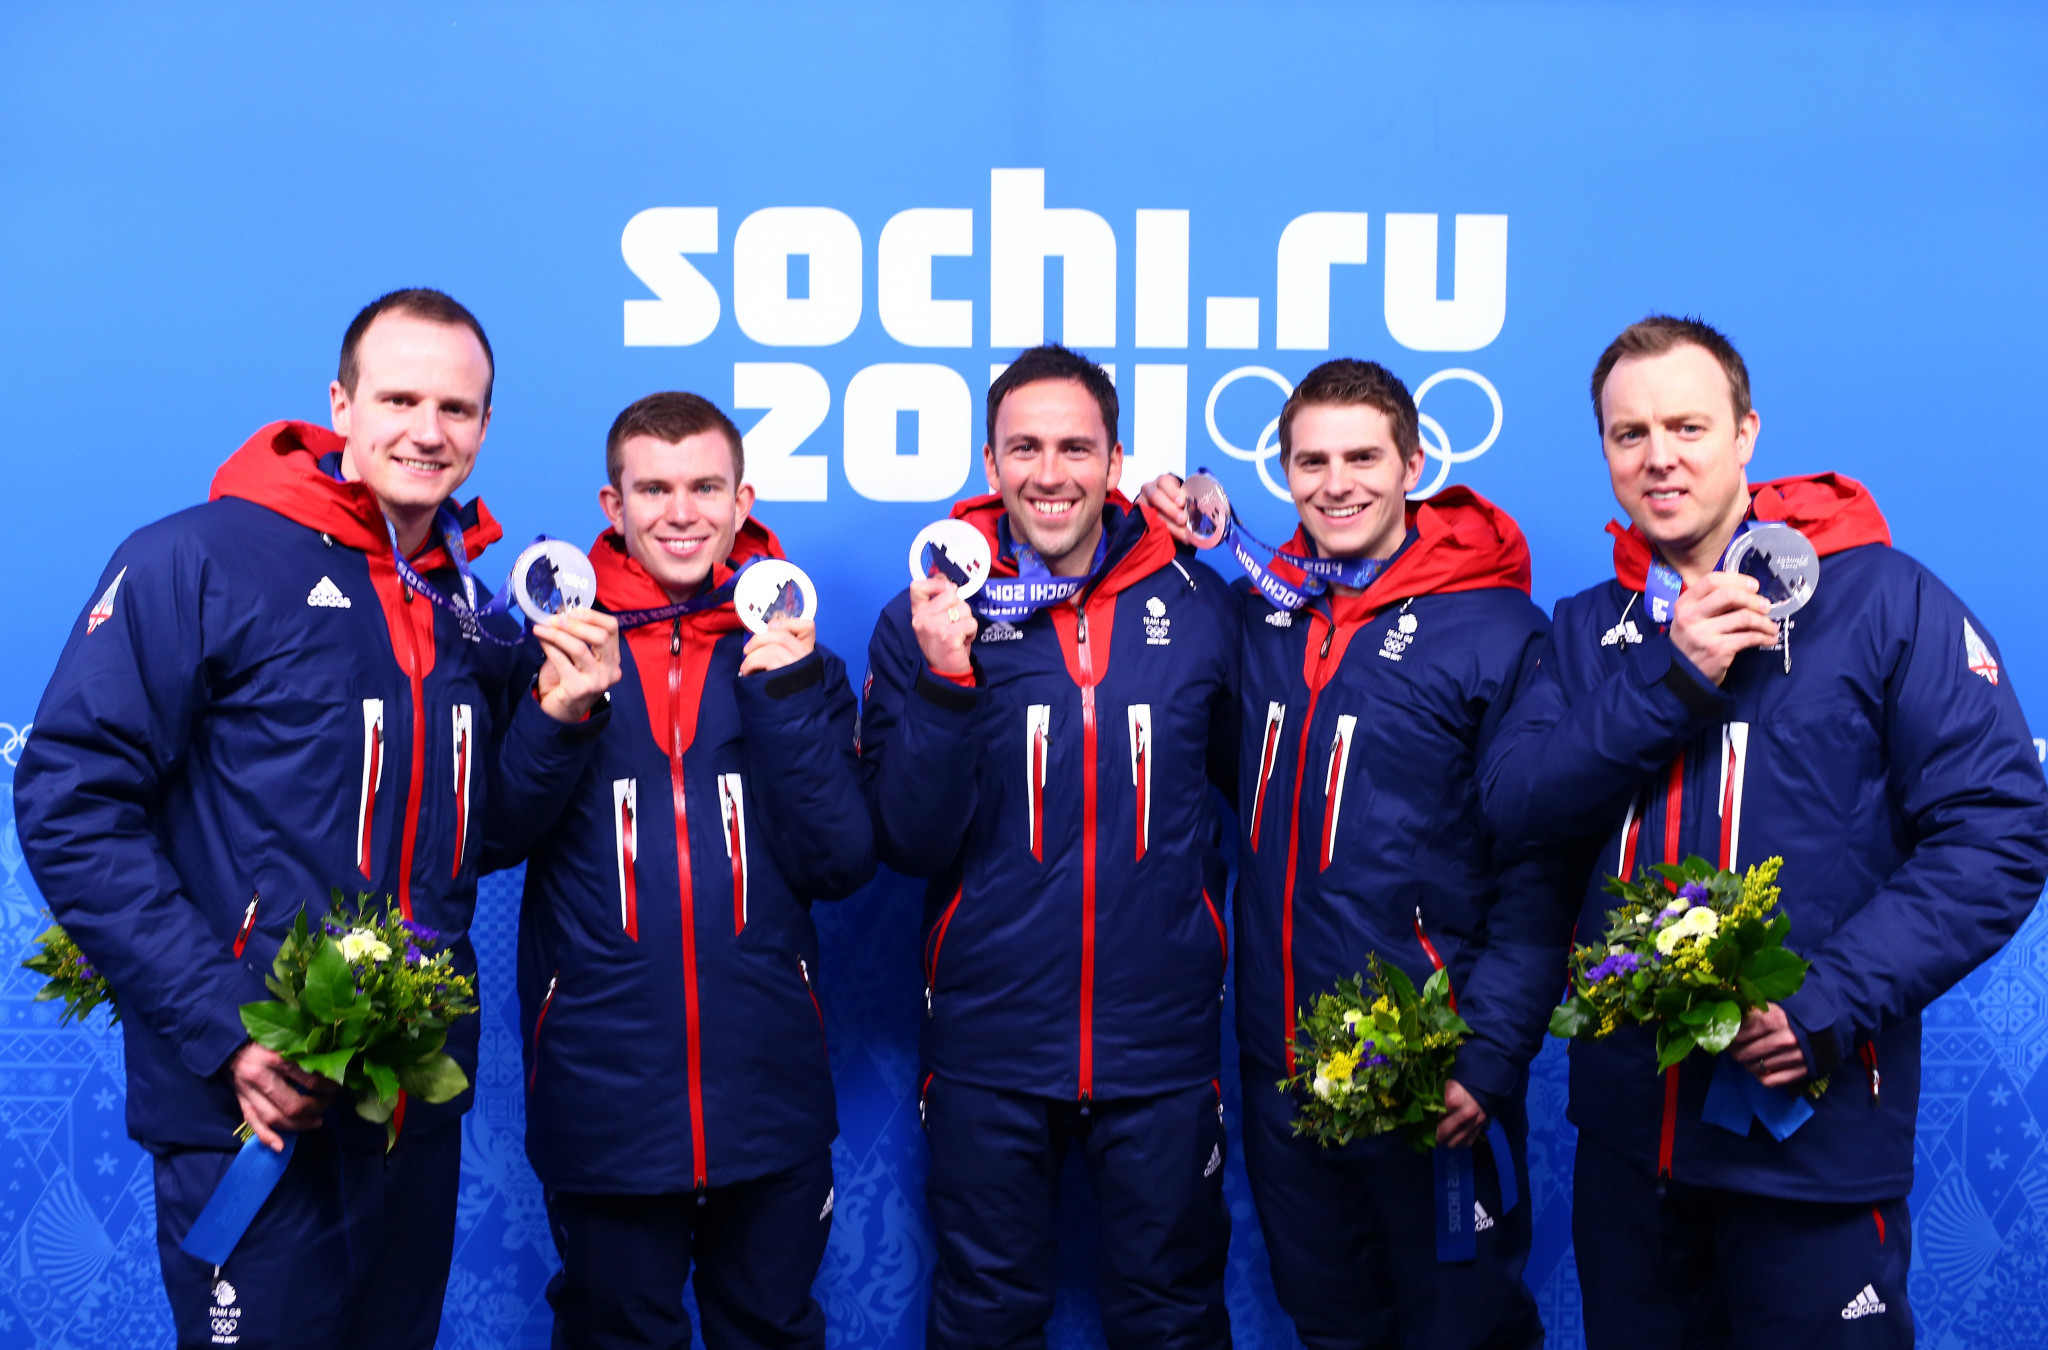 Michael Goodfellow, far left, won a silver medal at Sochi 2014 in the British men's team skipped by David Murdoch, centre ©Getty Images